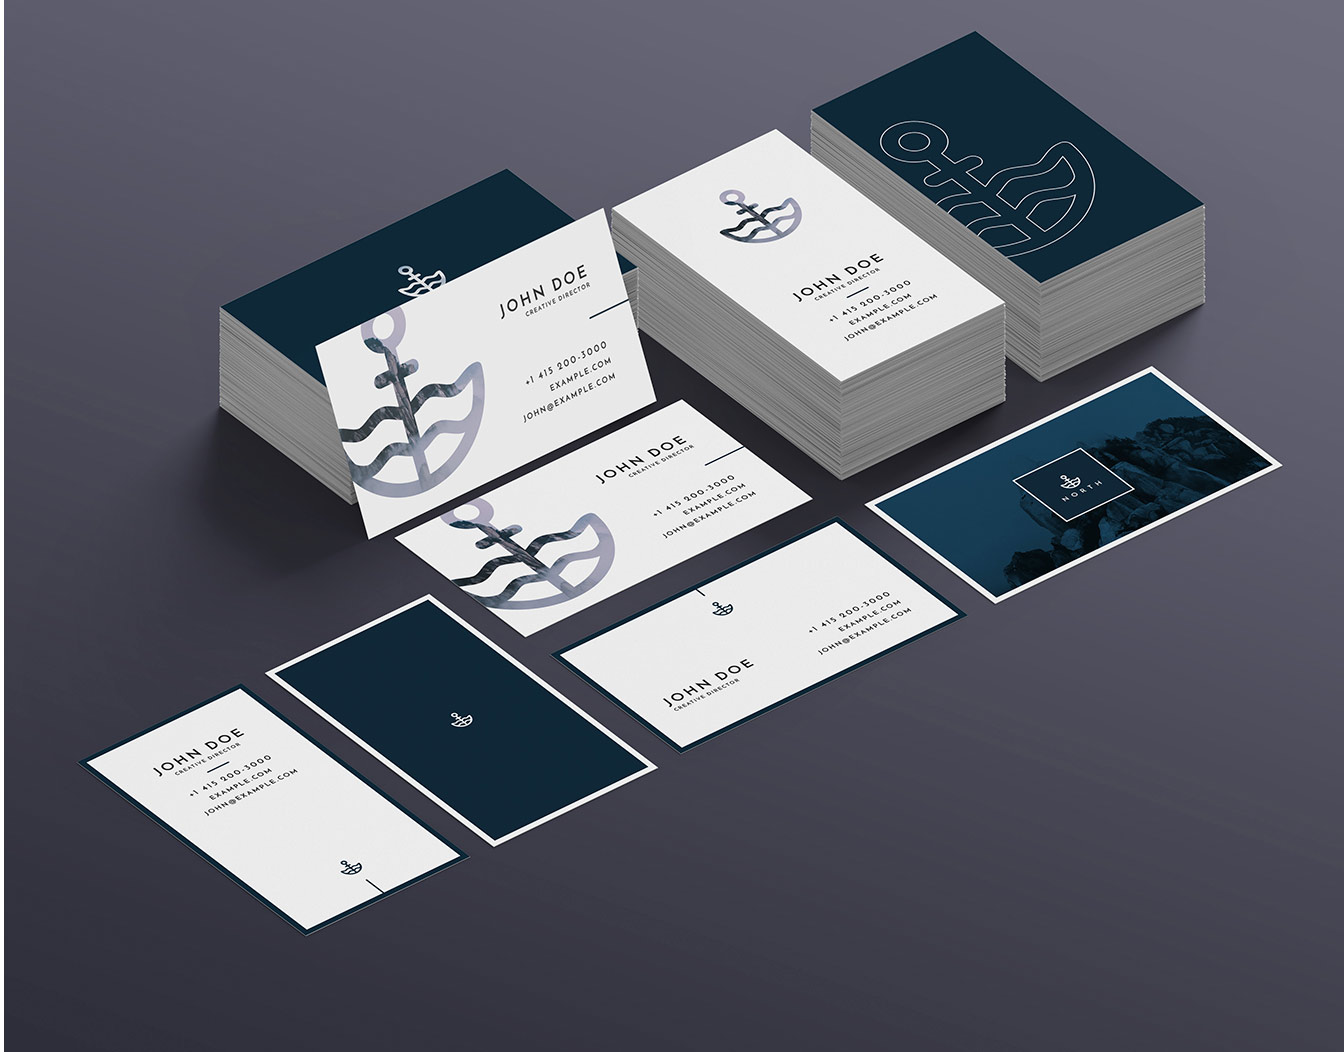 Stacked business cards with watermark